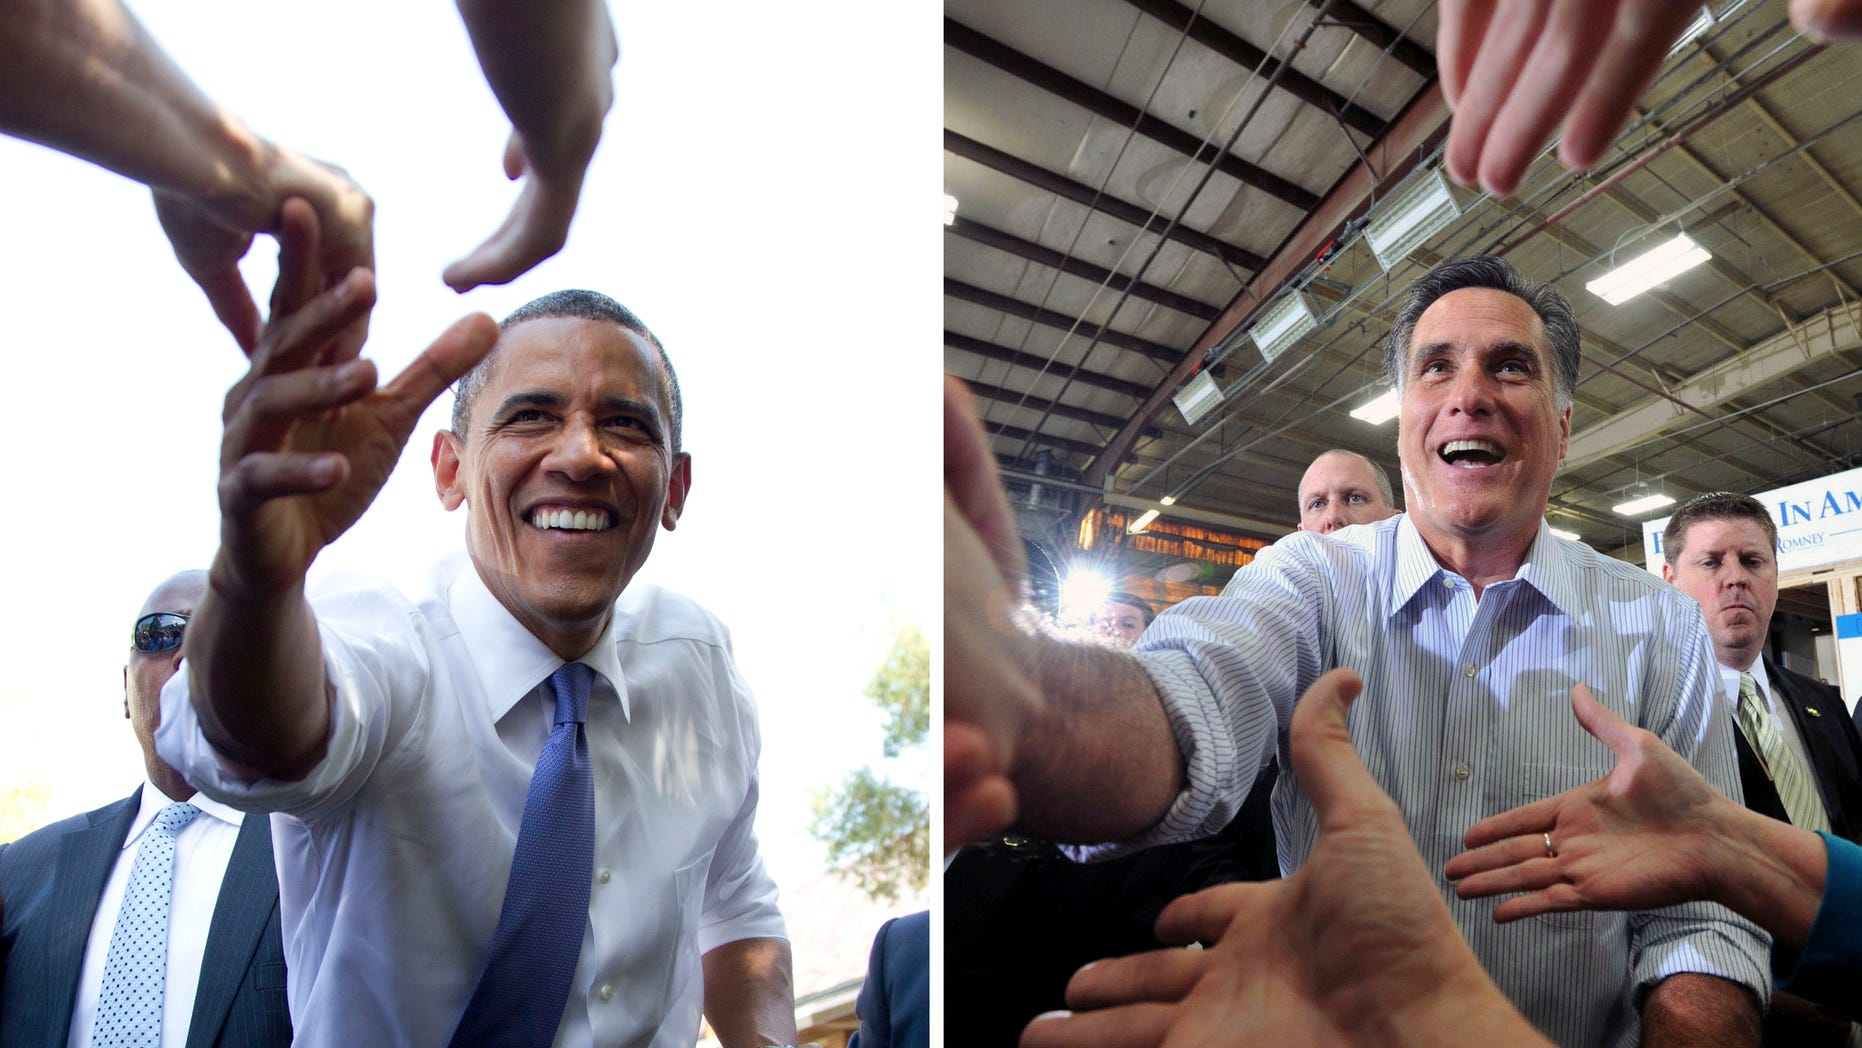 In this photo combination, President Barack Obama, left, reaches out to shake hands after speaking at a campaign event at Capital University on Tuesday, Aug. 21, 2012, in Columbus, Ohio and Republican presidential candidate, Mitt Romney, shakes hands with supporters after finishing his speech during a rally at Guerdon Enterprises in Boise, Idaho  Friday, Feb. 17, 2012. Two months out from Election Day, nearly a quarter of all registered voters are either undecided about the presidential race or iffy in their support for a candidate, an Associated Press-GfK poll shows. These voters could well prove decisive in a close contest. And they will be tough nuts for Barack Obama and Mitt Romney to crack. (AP Photo)